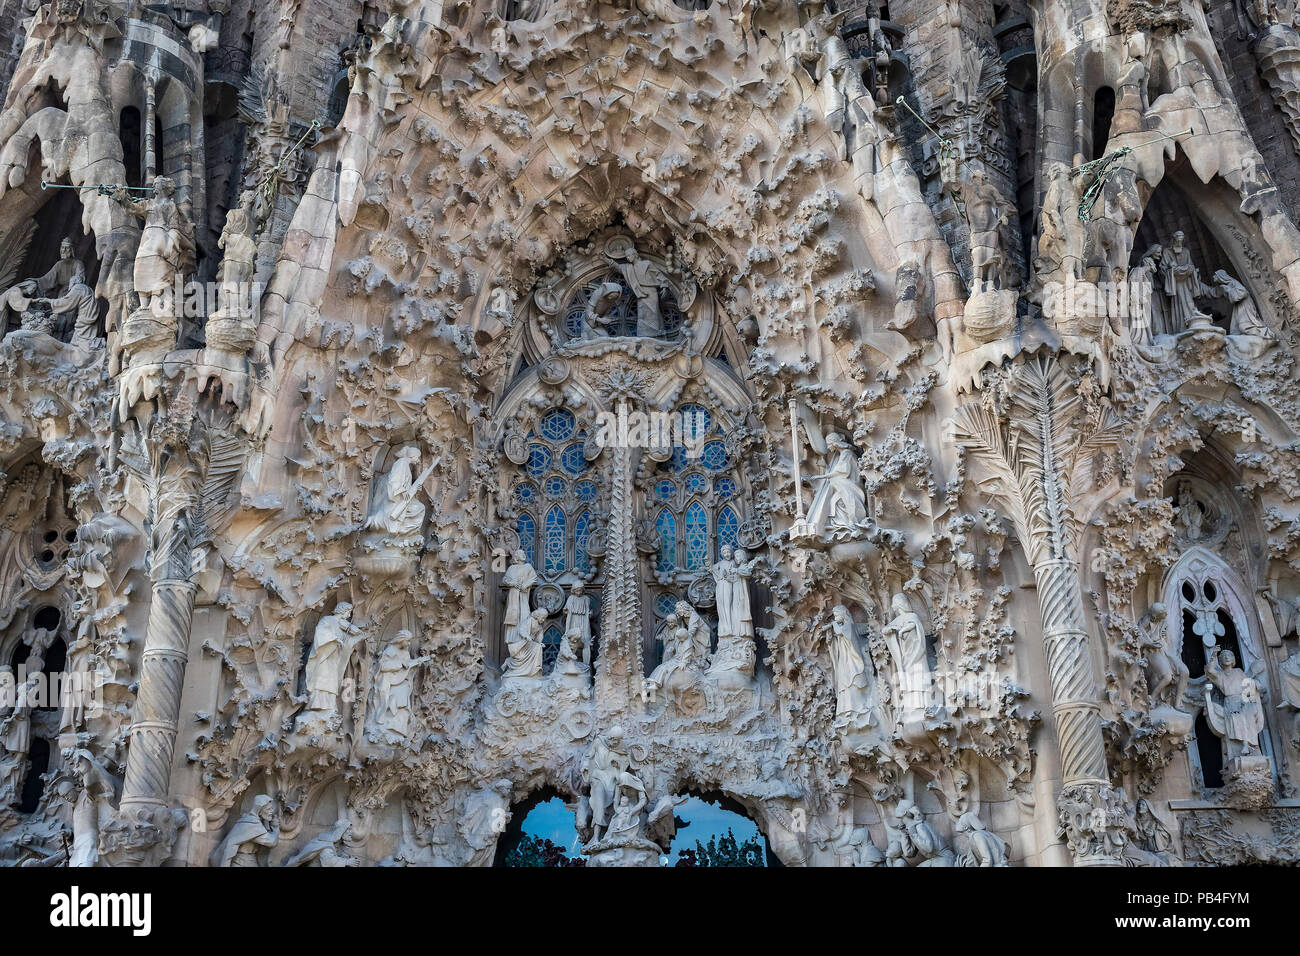 Barcelona Spain 13 January 2018 Elements Of The Statue And